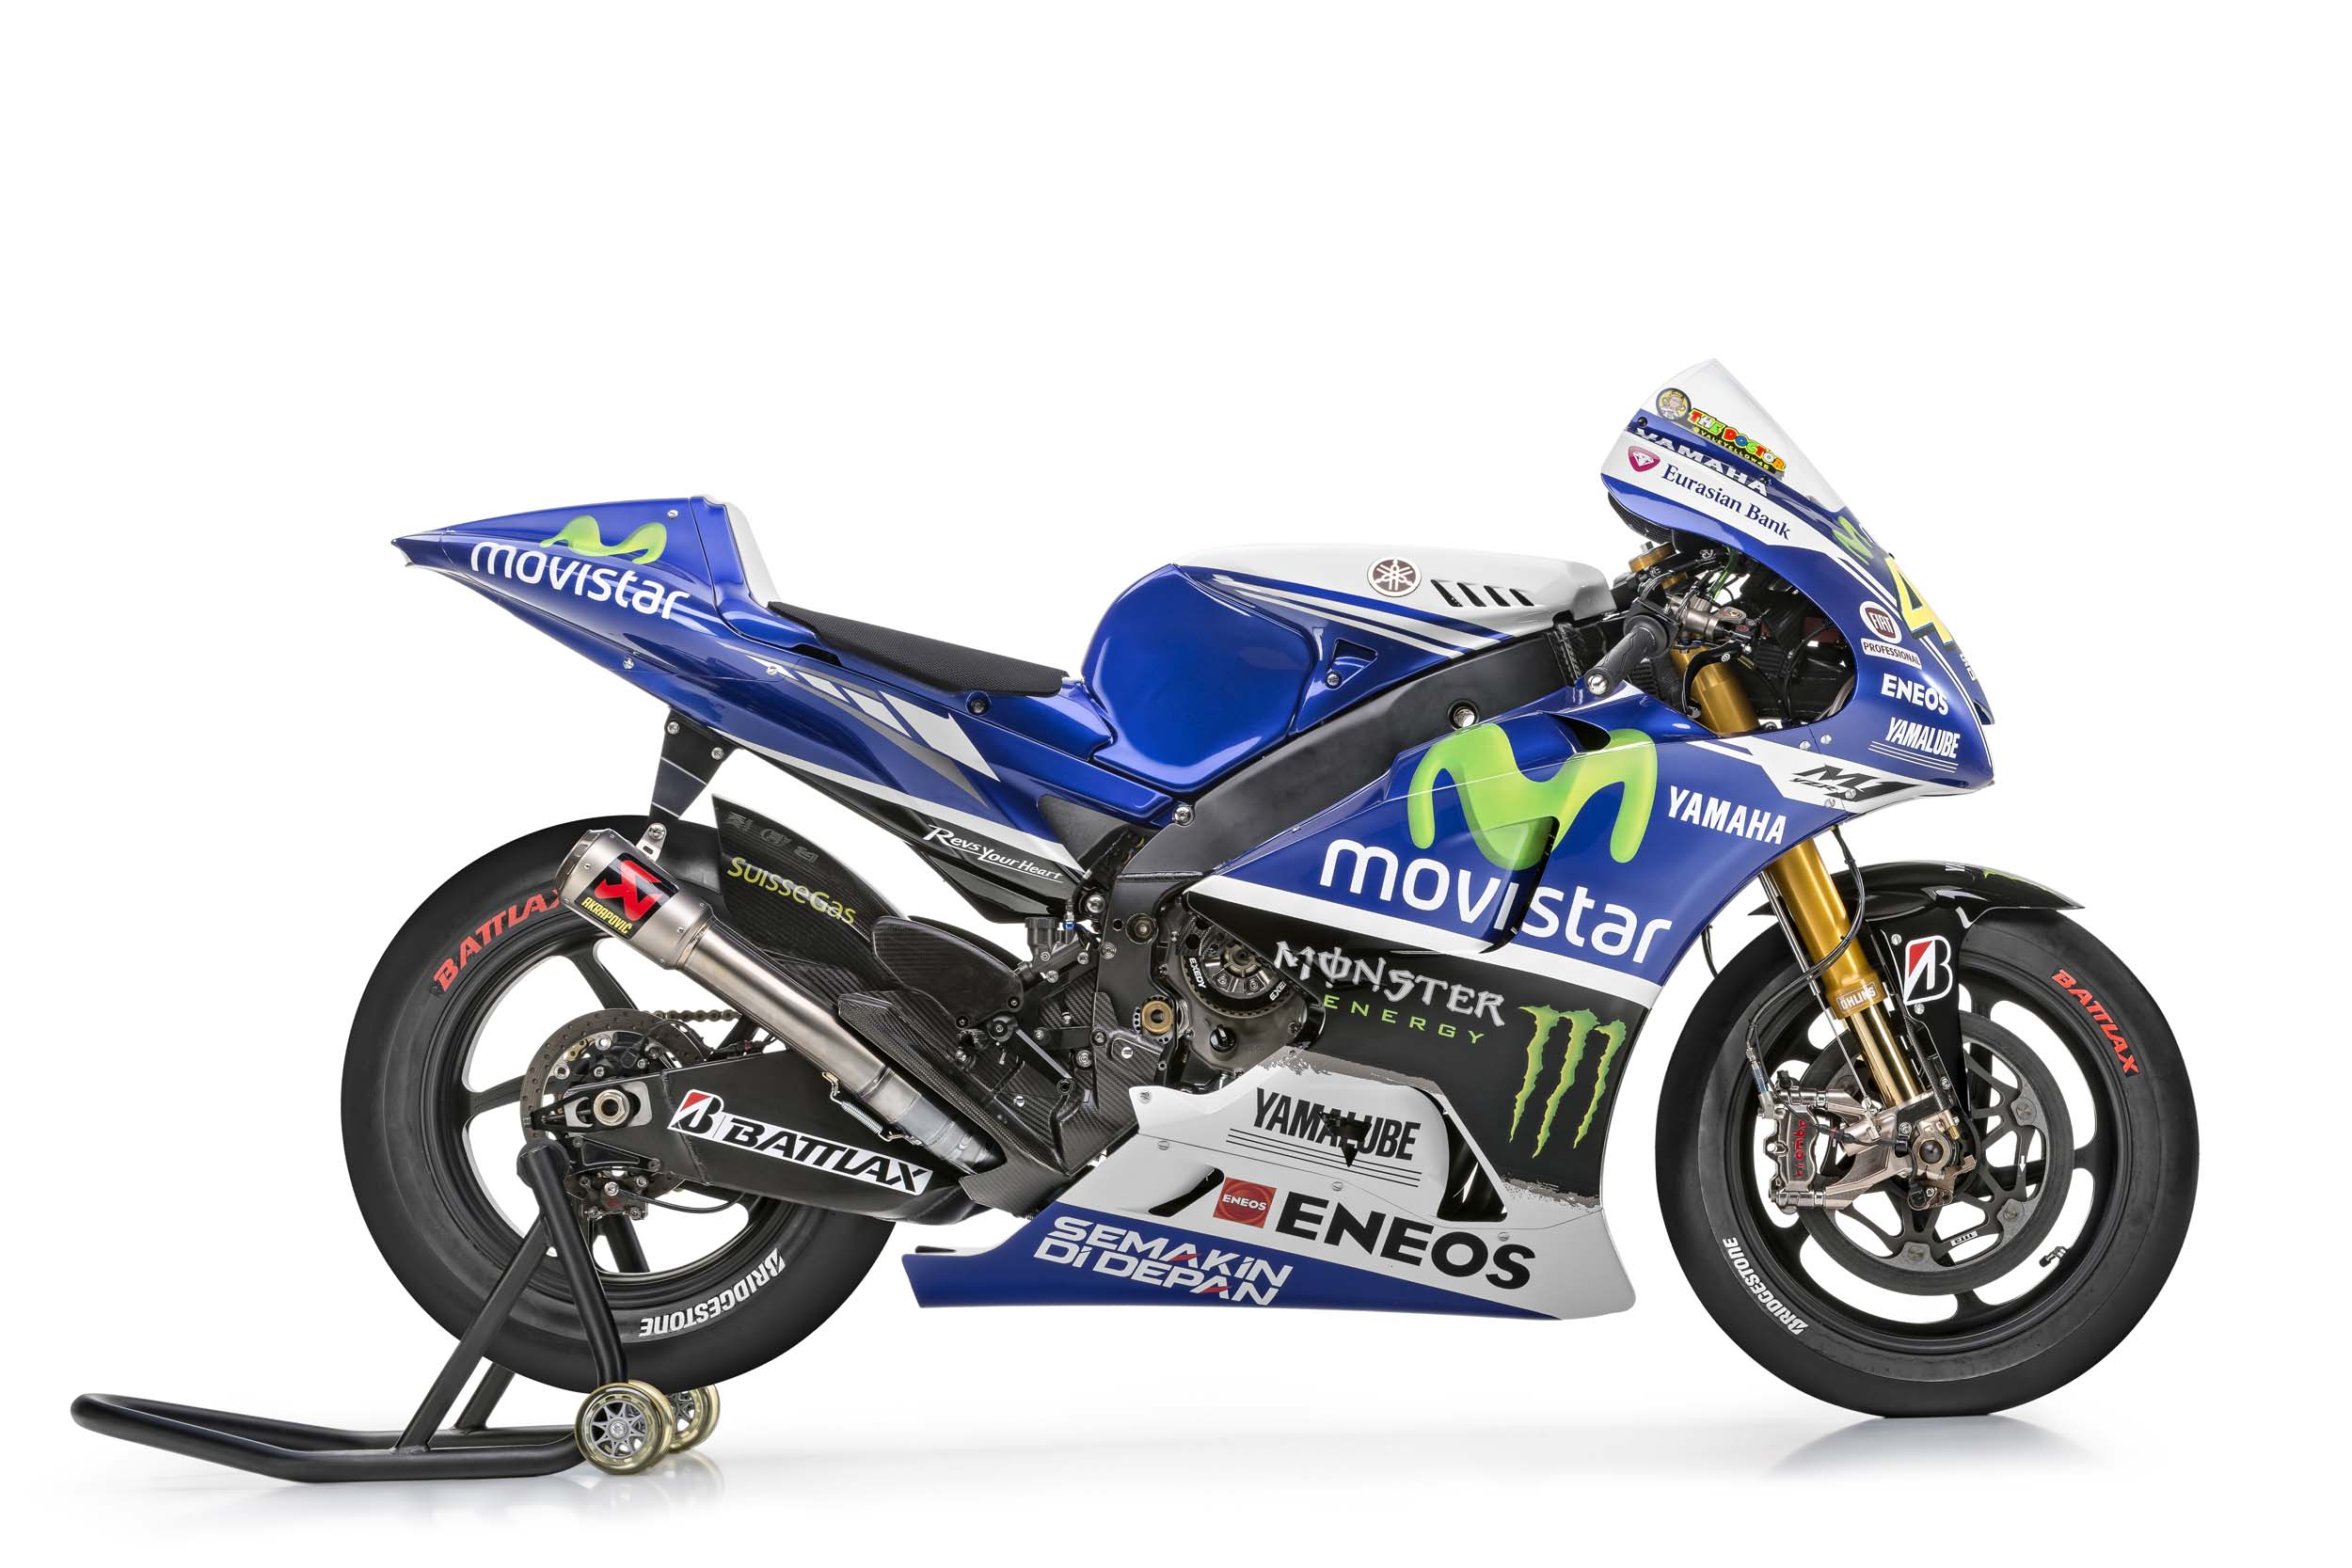 Movistar Yamaha 2014 Gallery